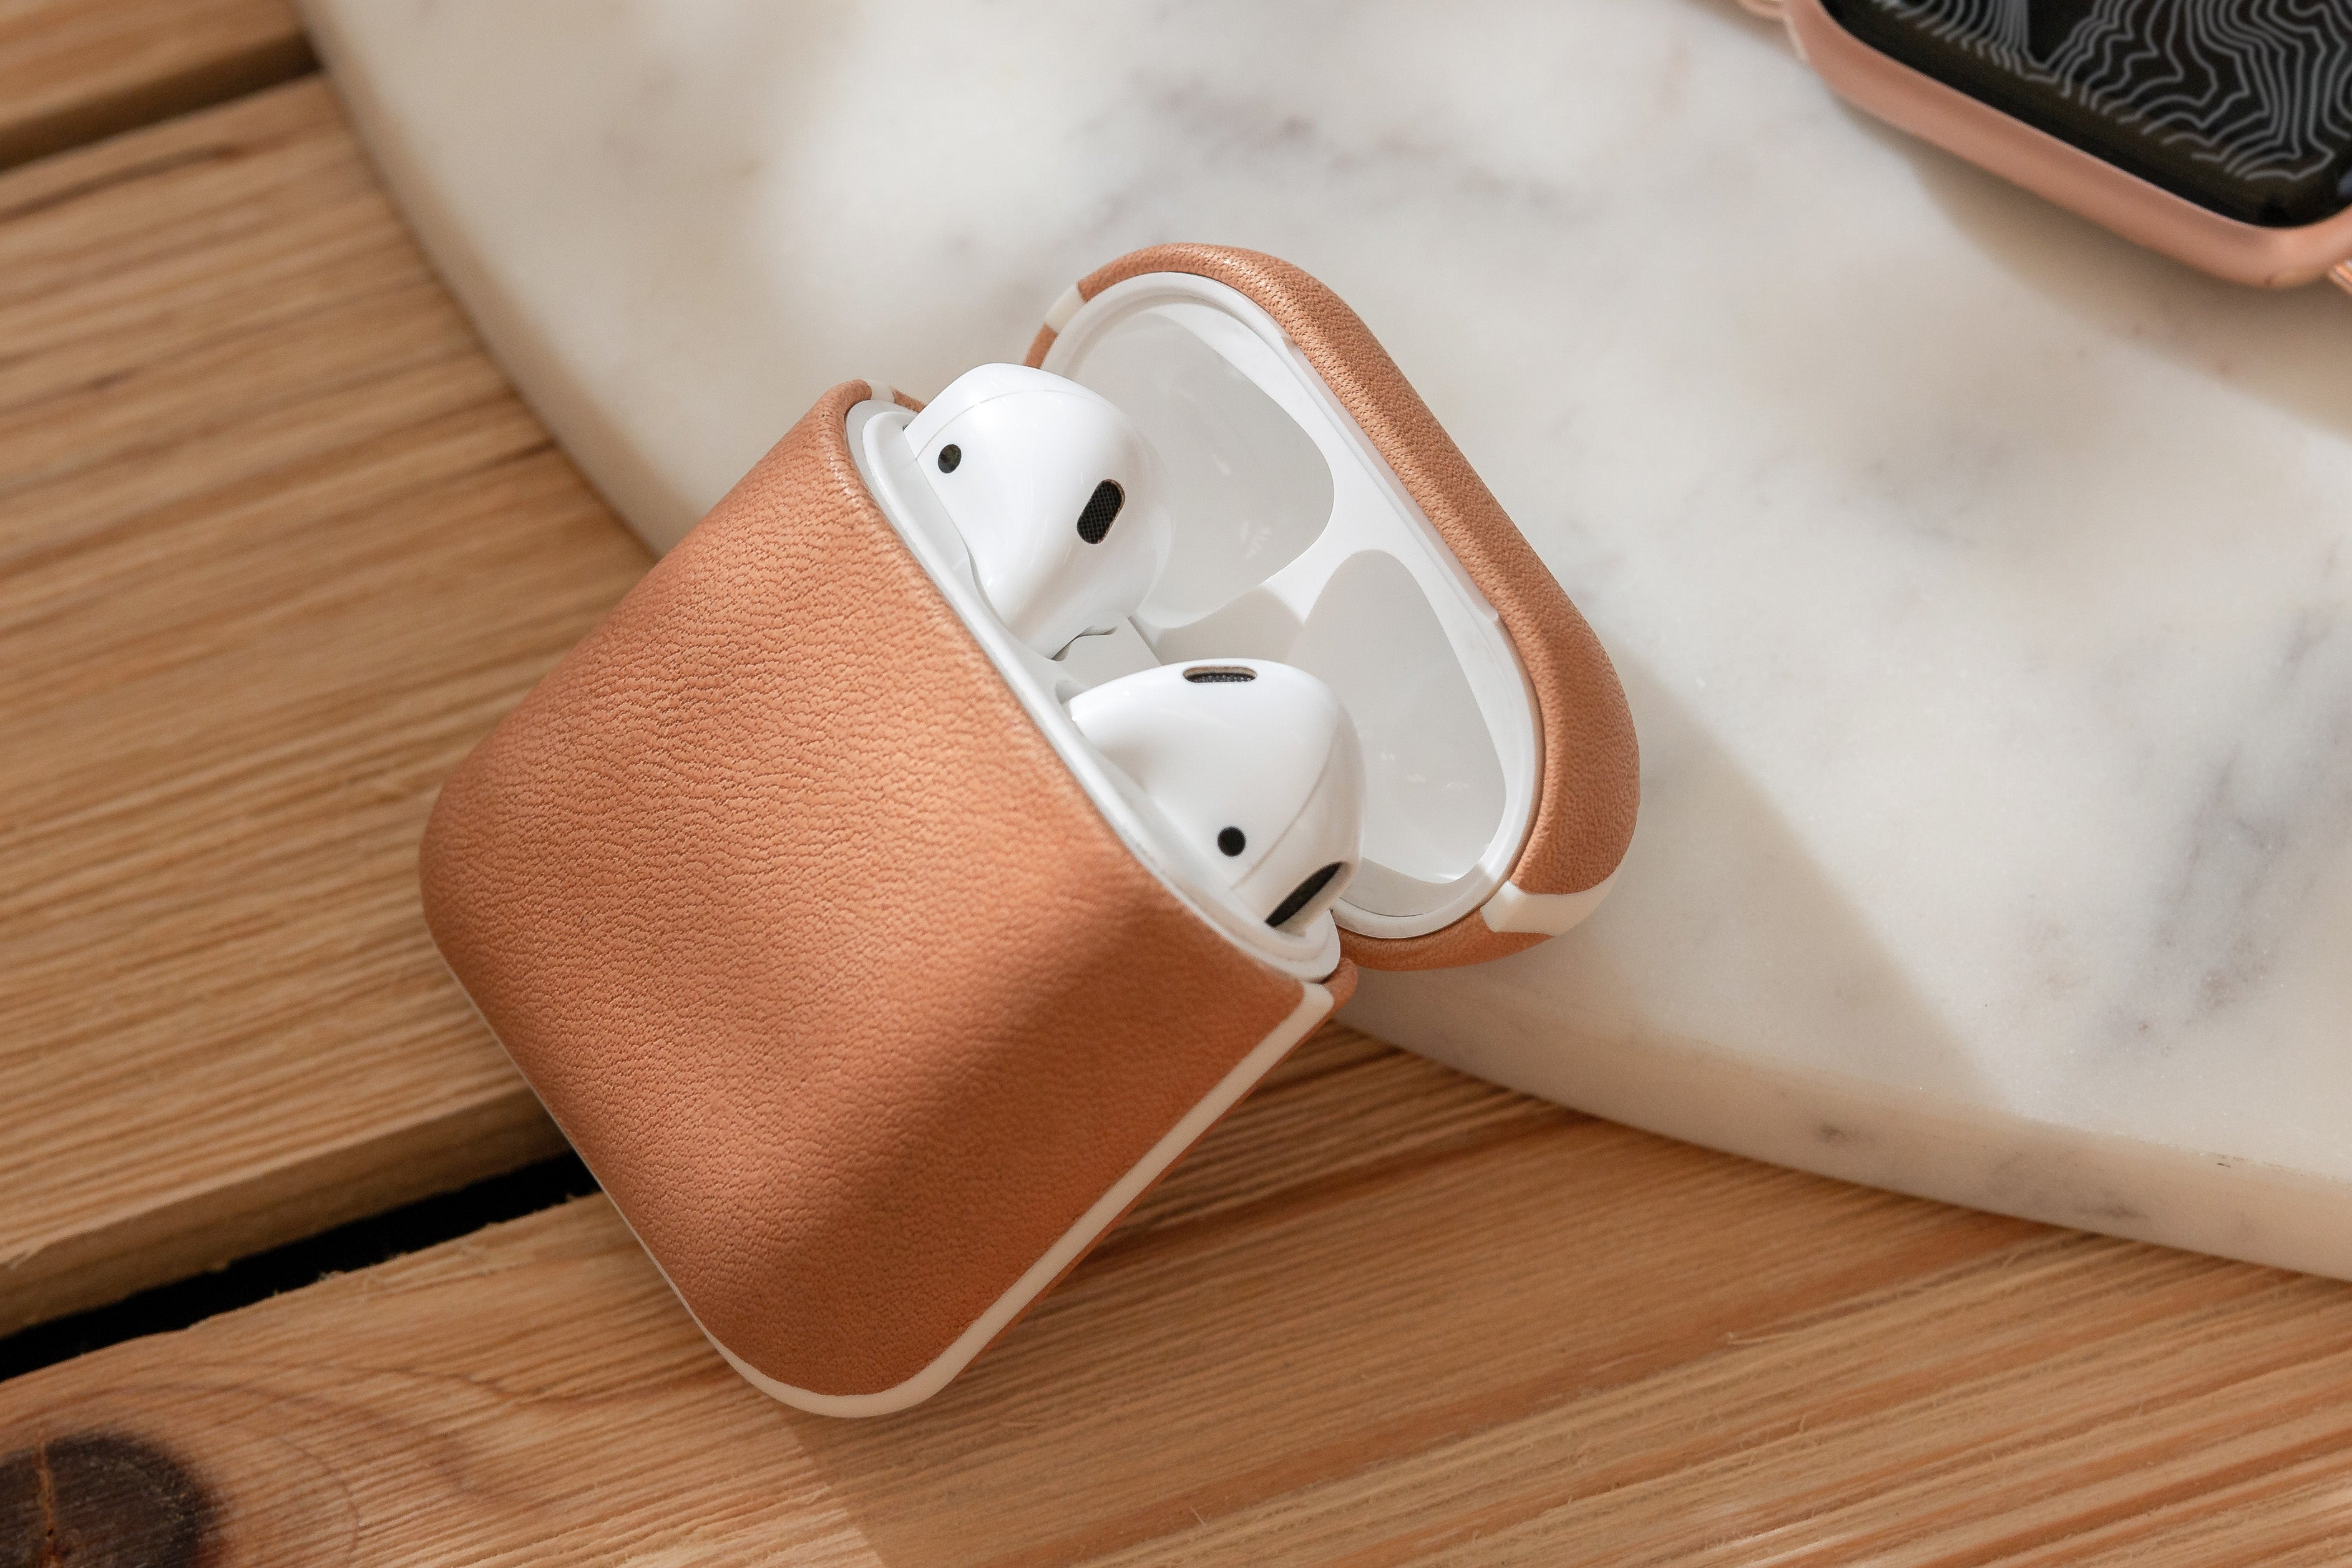 Open Rugged Case in Natural Nude displaying Apple Airpods leaning on a marble slab